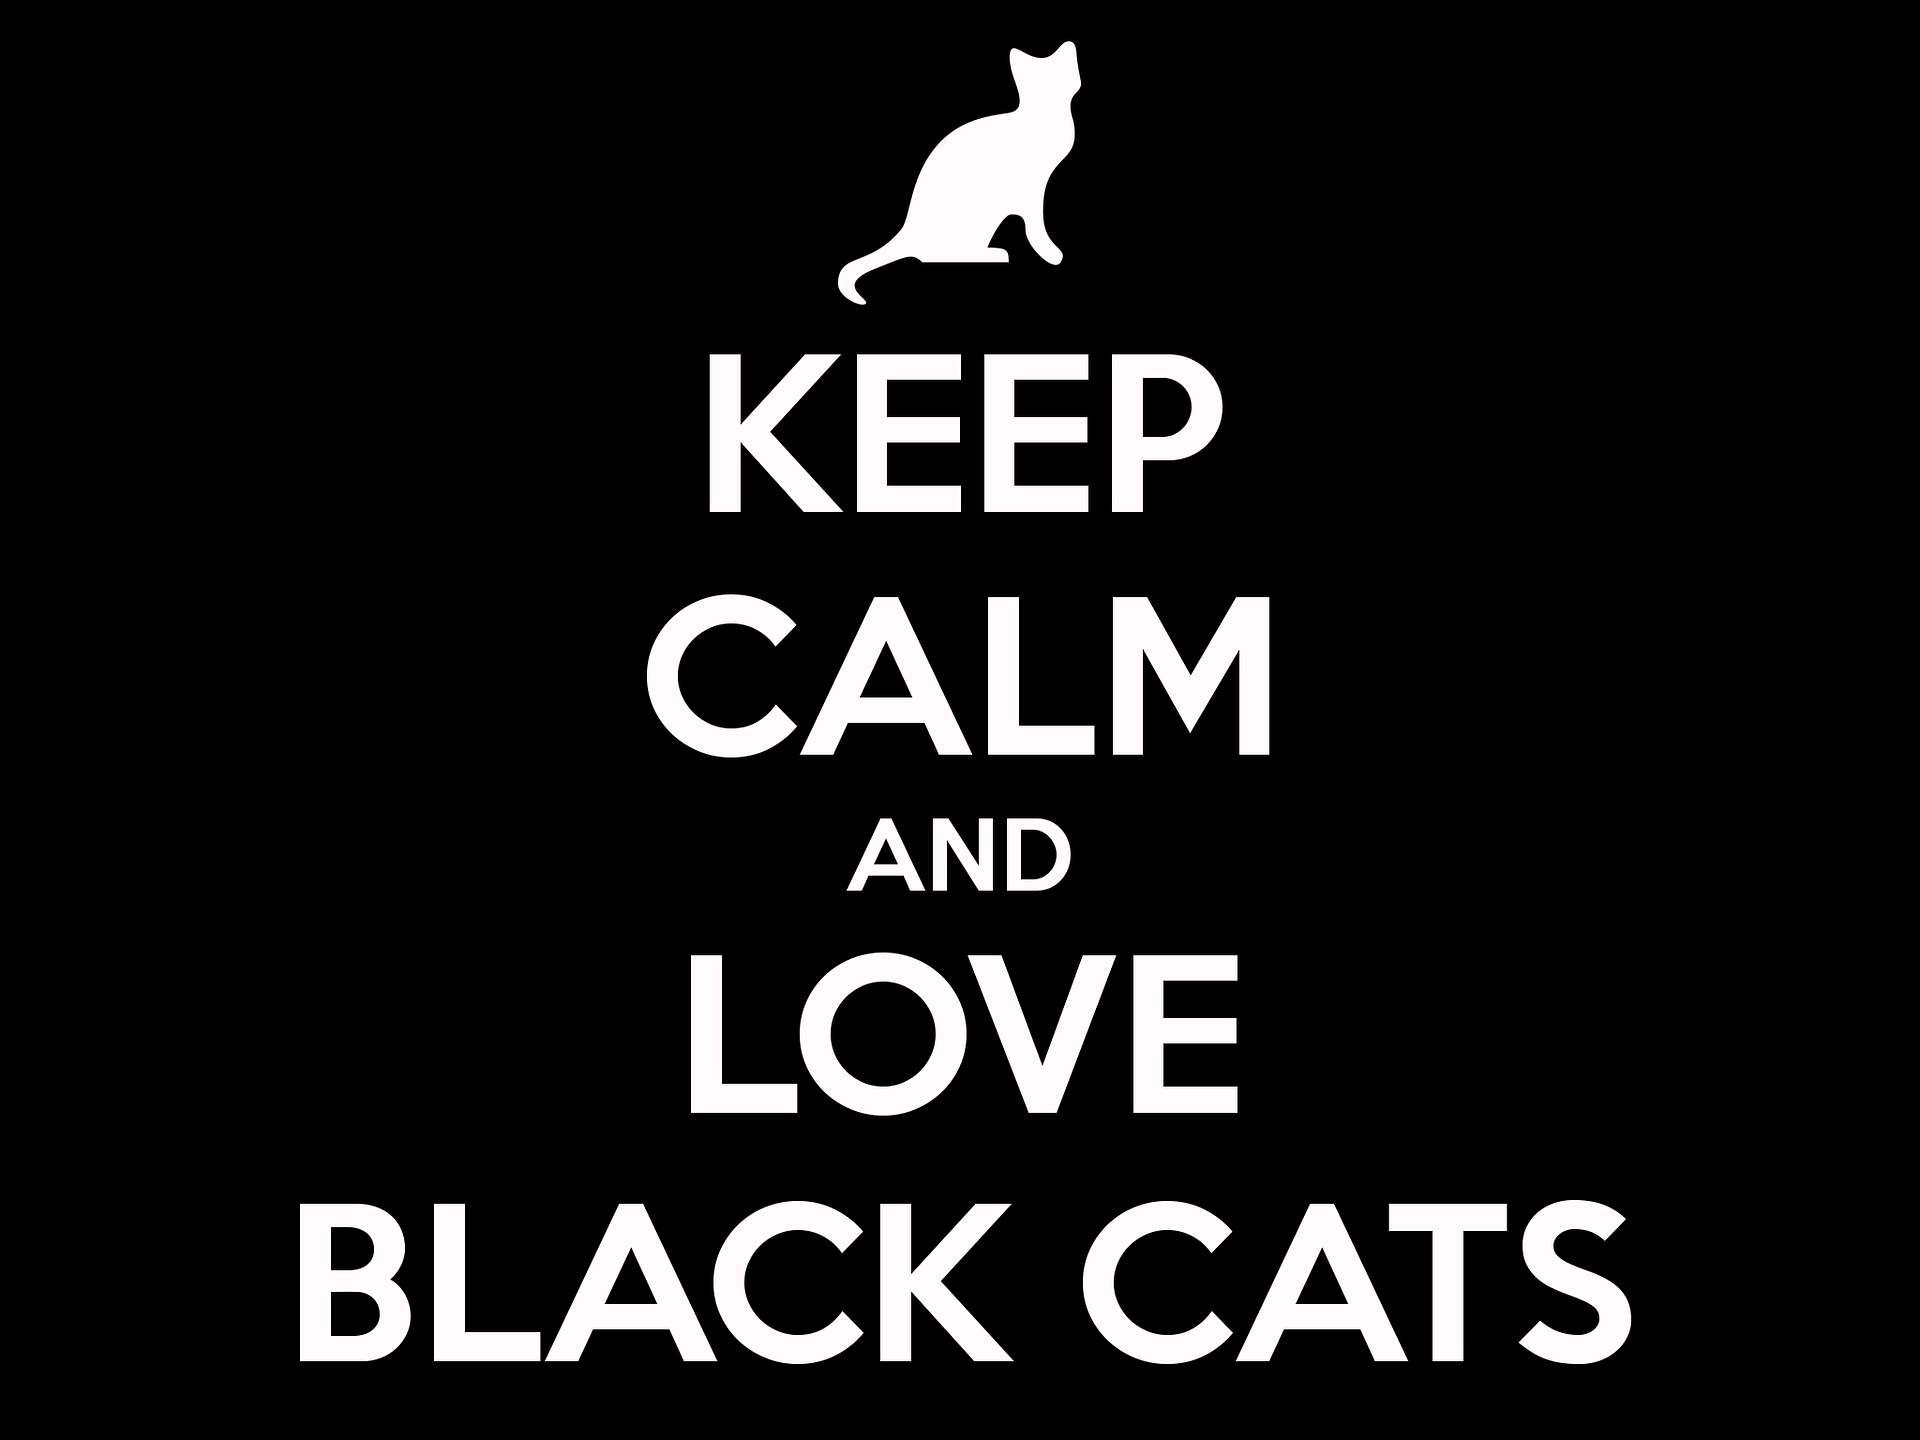 Share if you find it terrific! #kittens #pet #cats